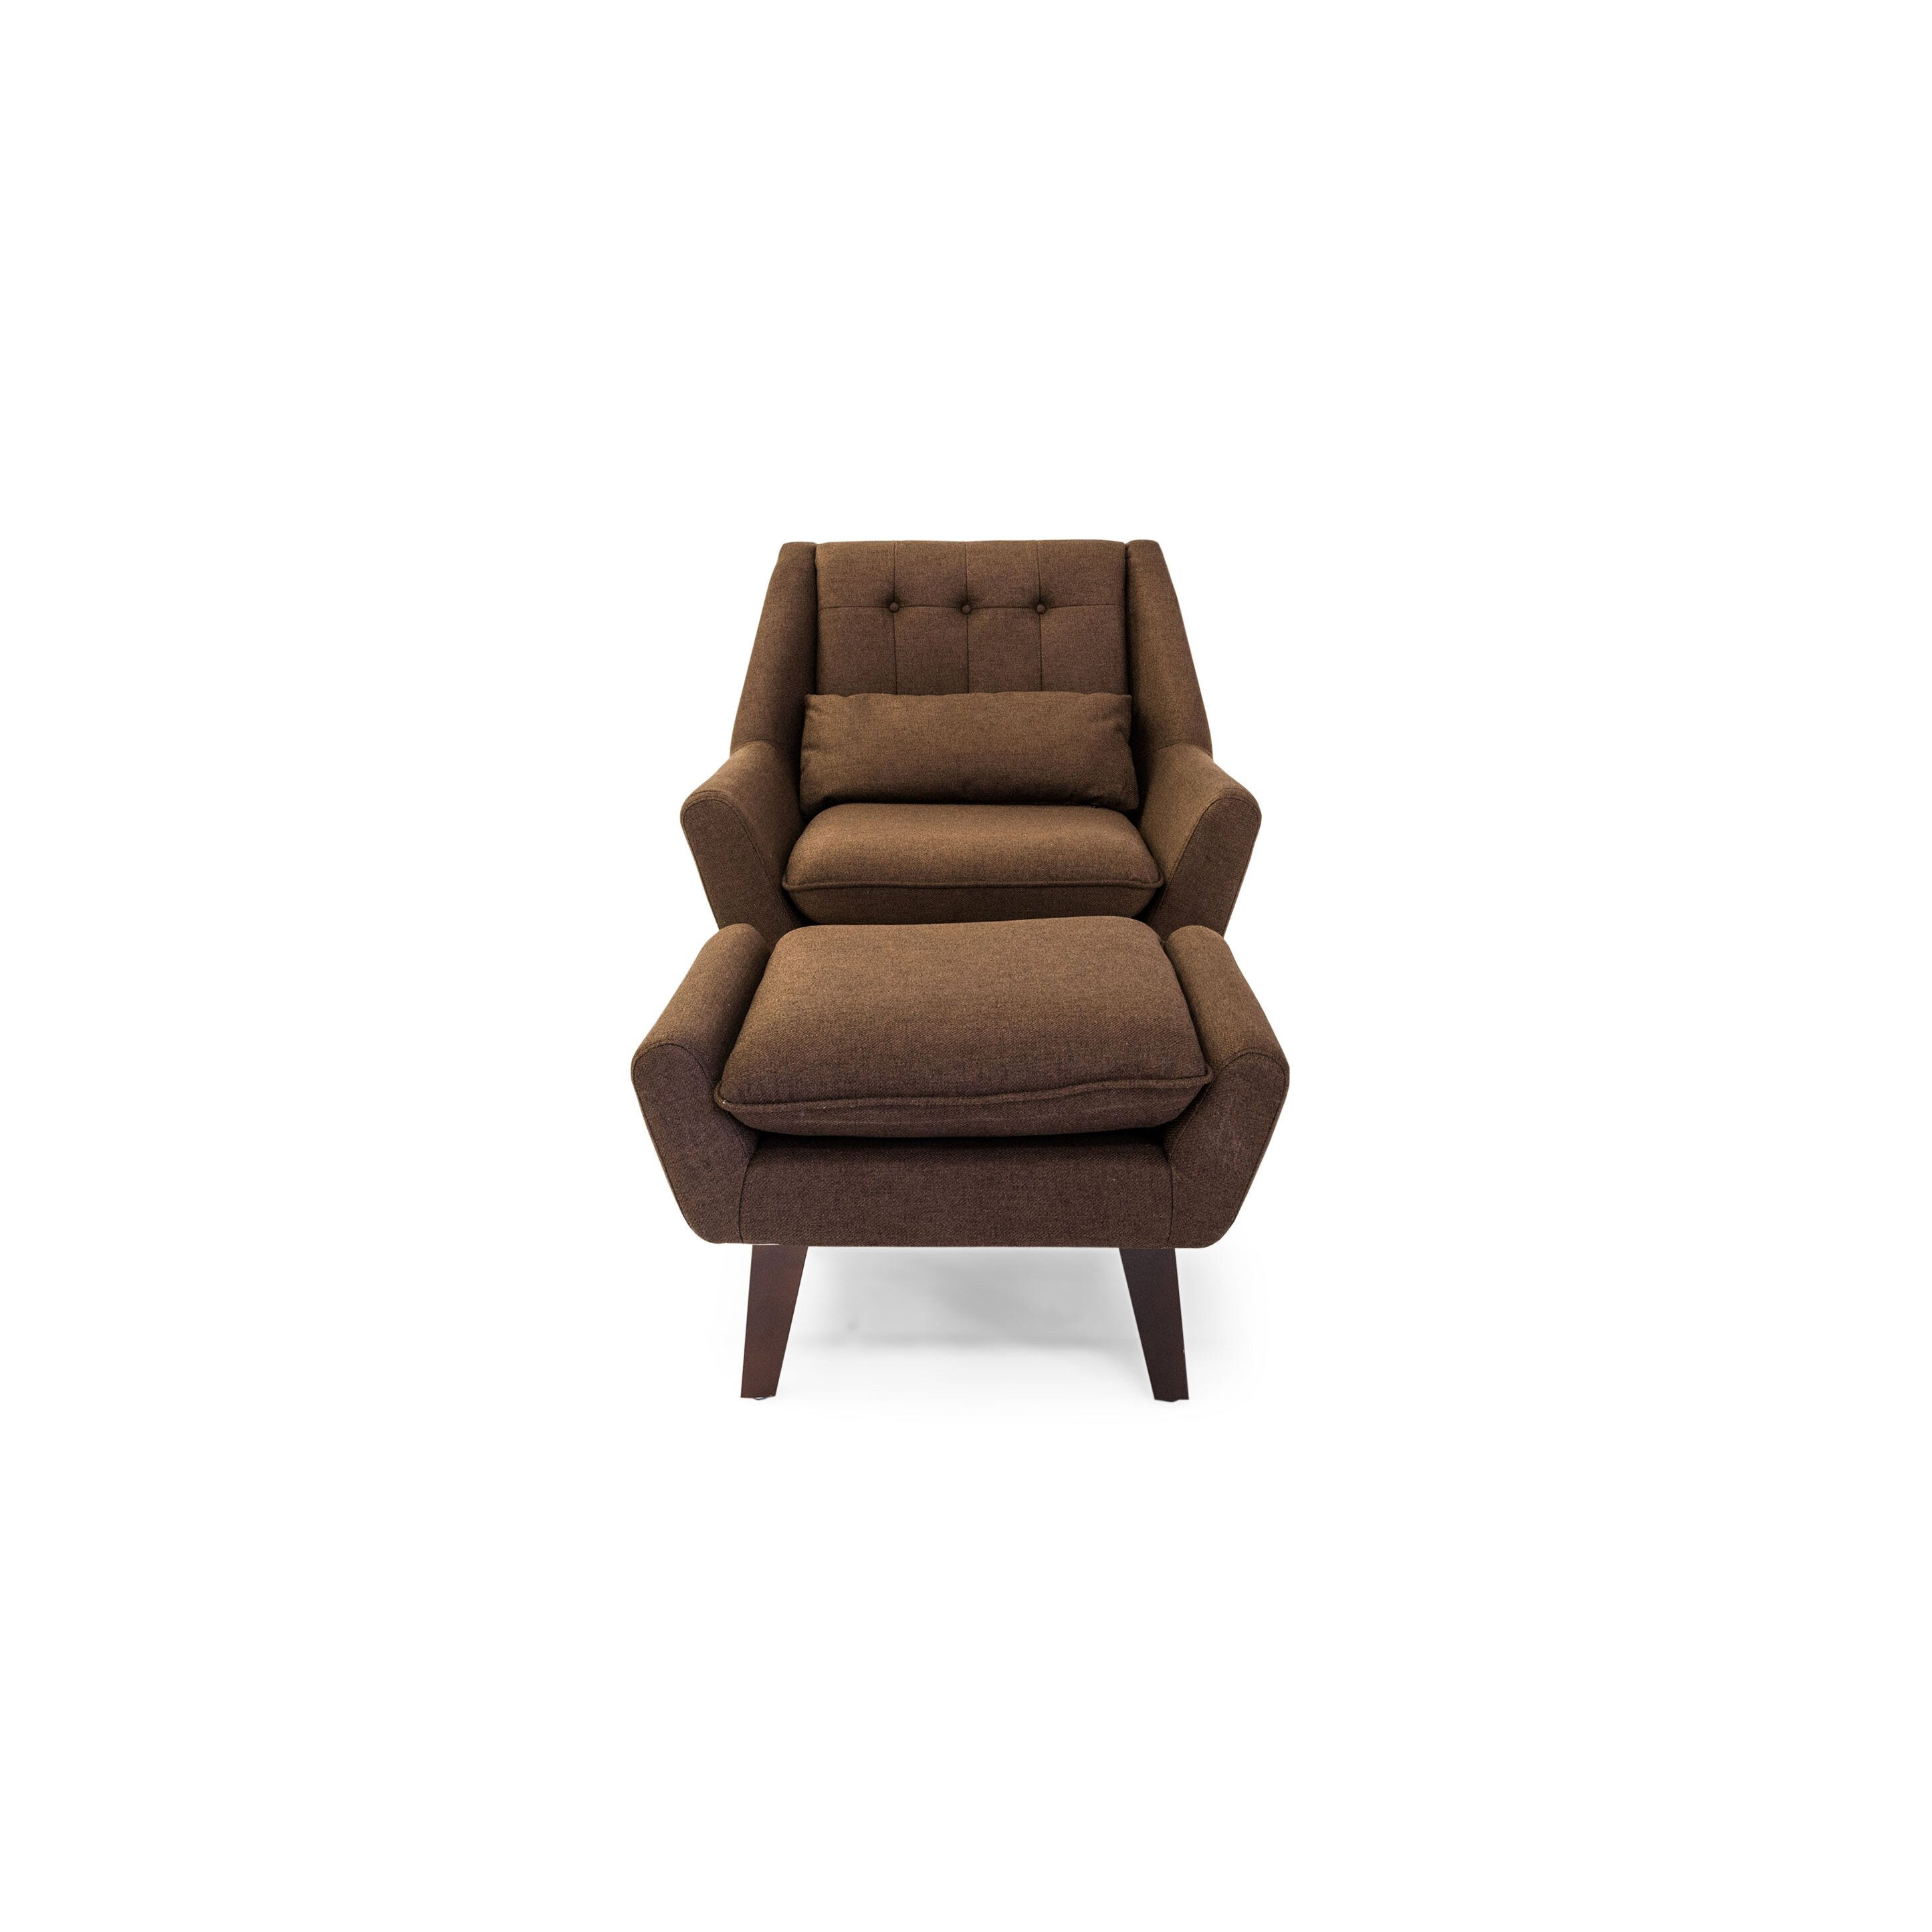 Kar l Stuart Lounge Chair and Ottoman